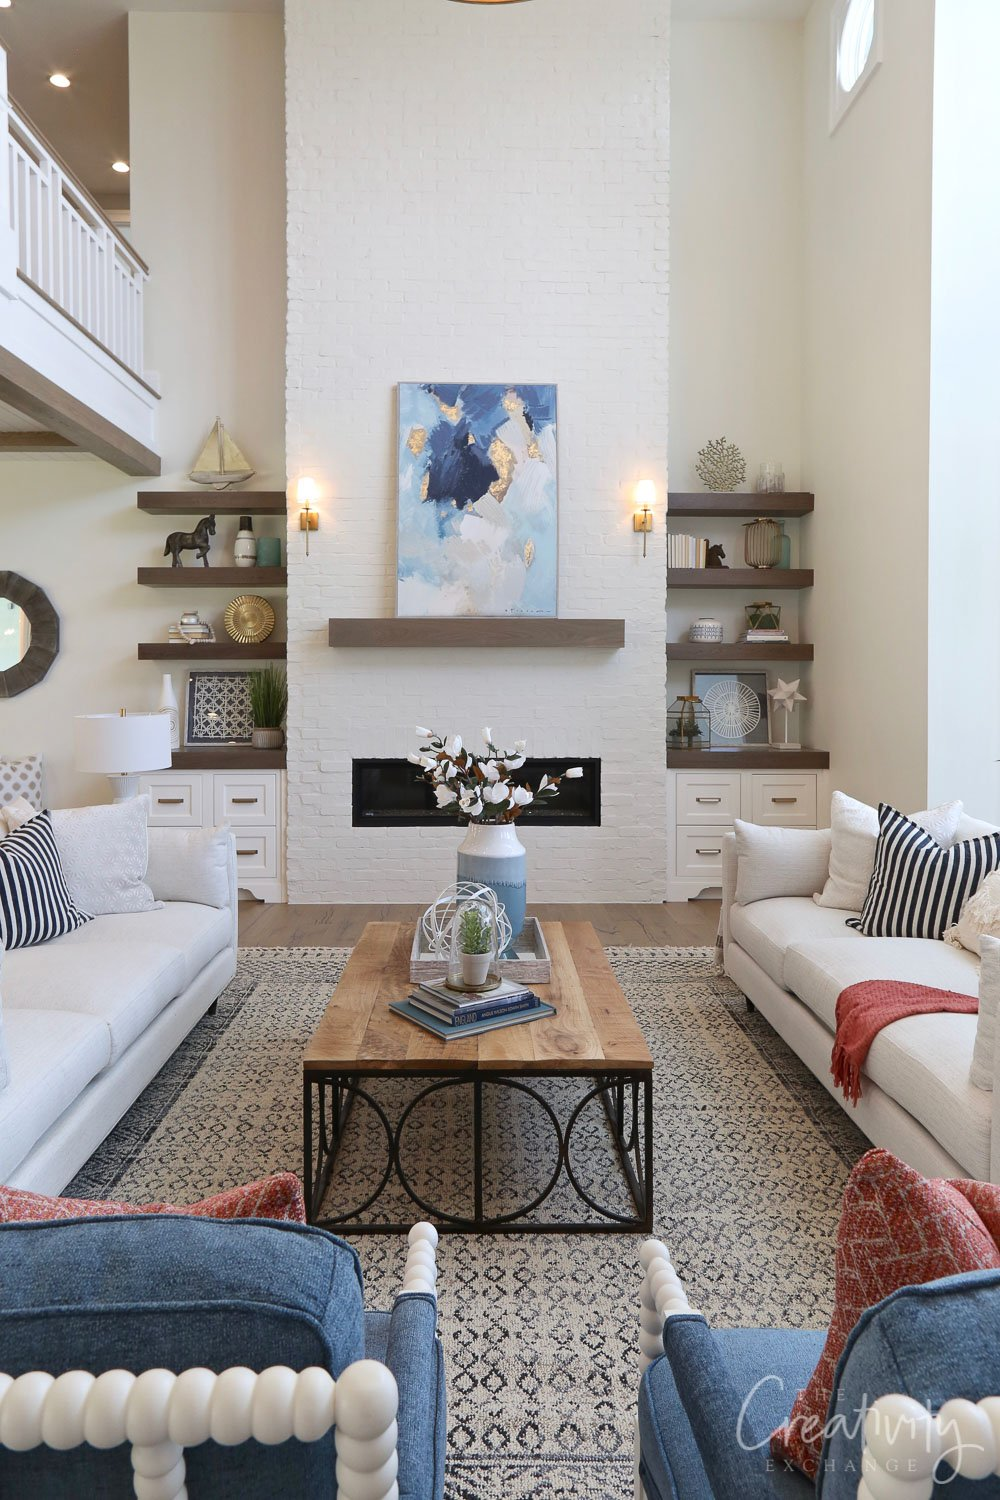 Living room color is Benjamin Moore Simply White